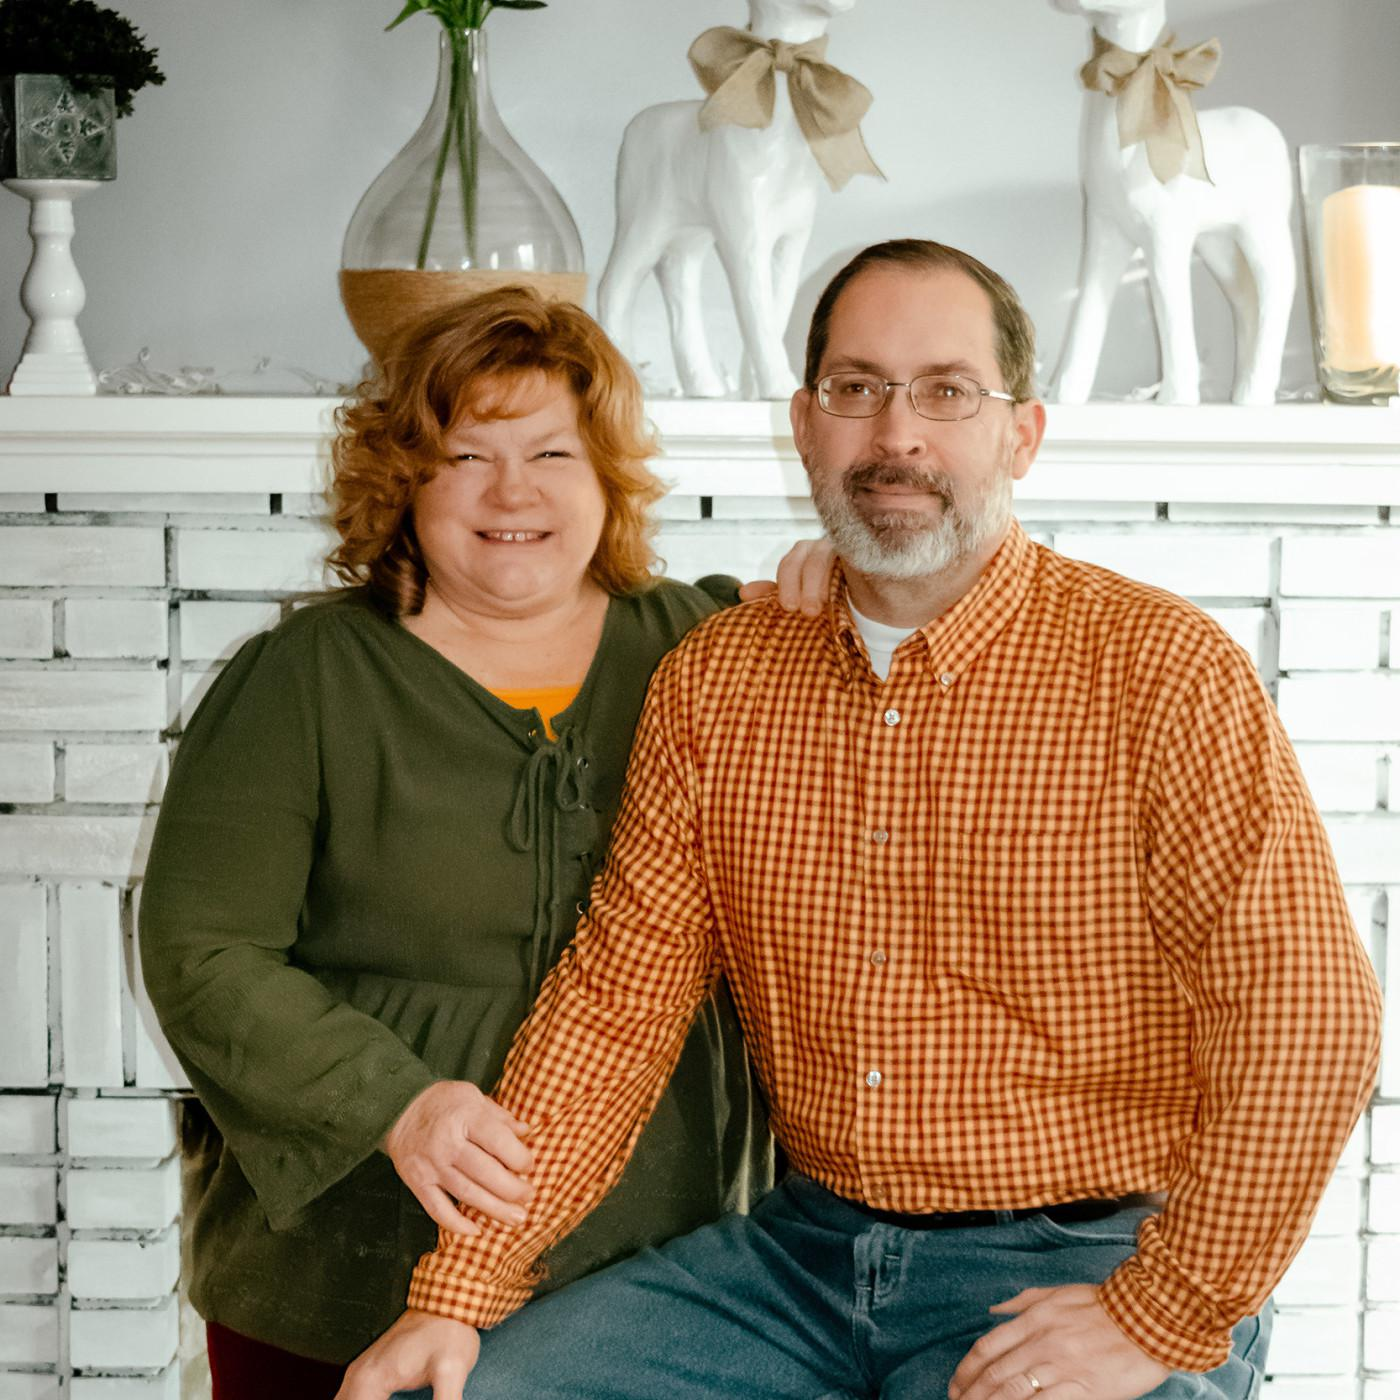 Pastor Ken Patterson and his wife Sherri Patterson